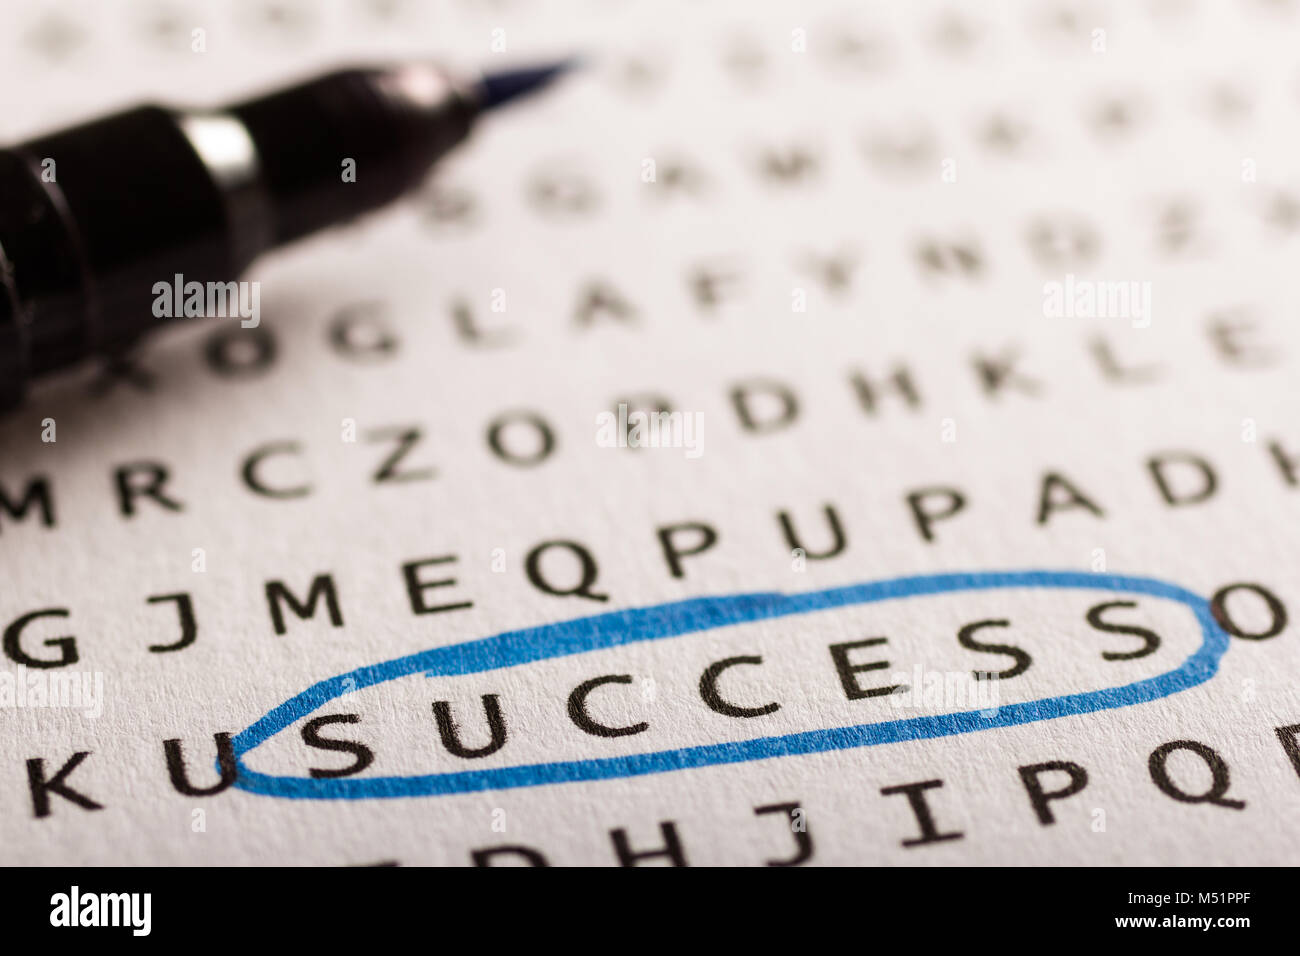 Word search, puzzle. Close up of letters on canvas. Concept about finding, success, business. - Stock Image